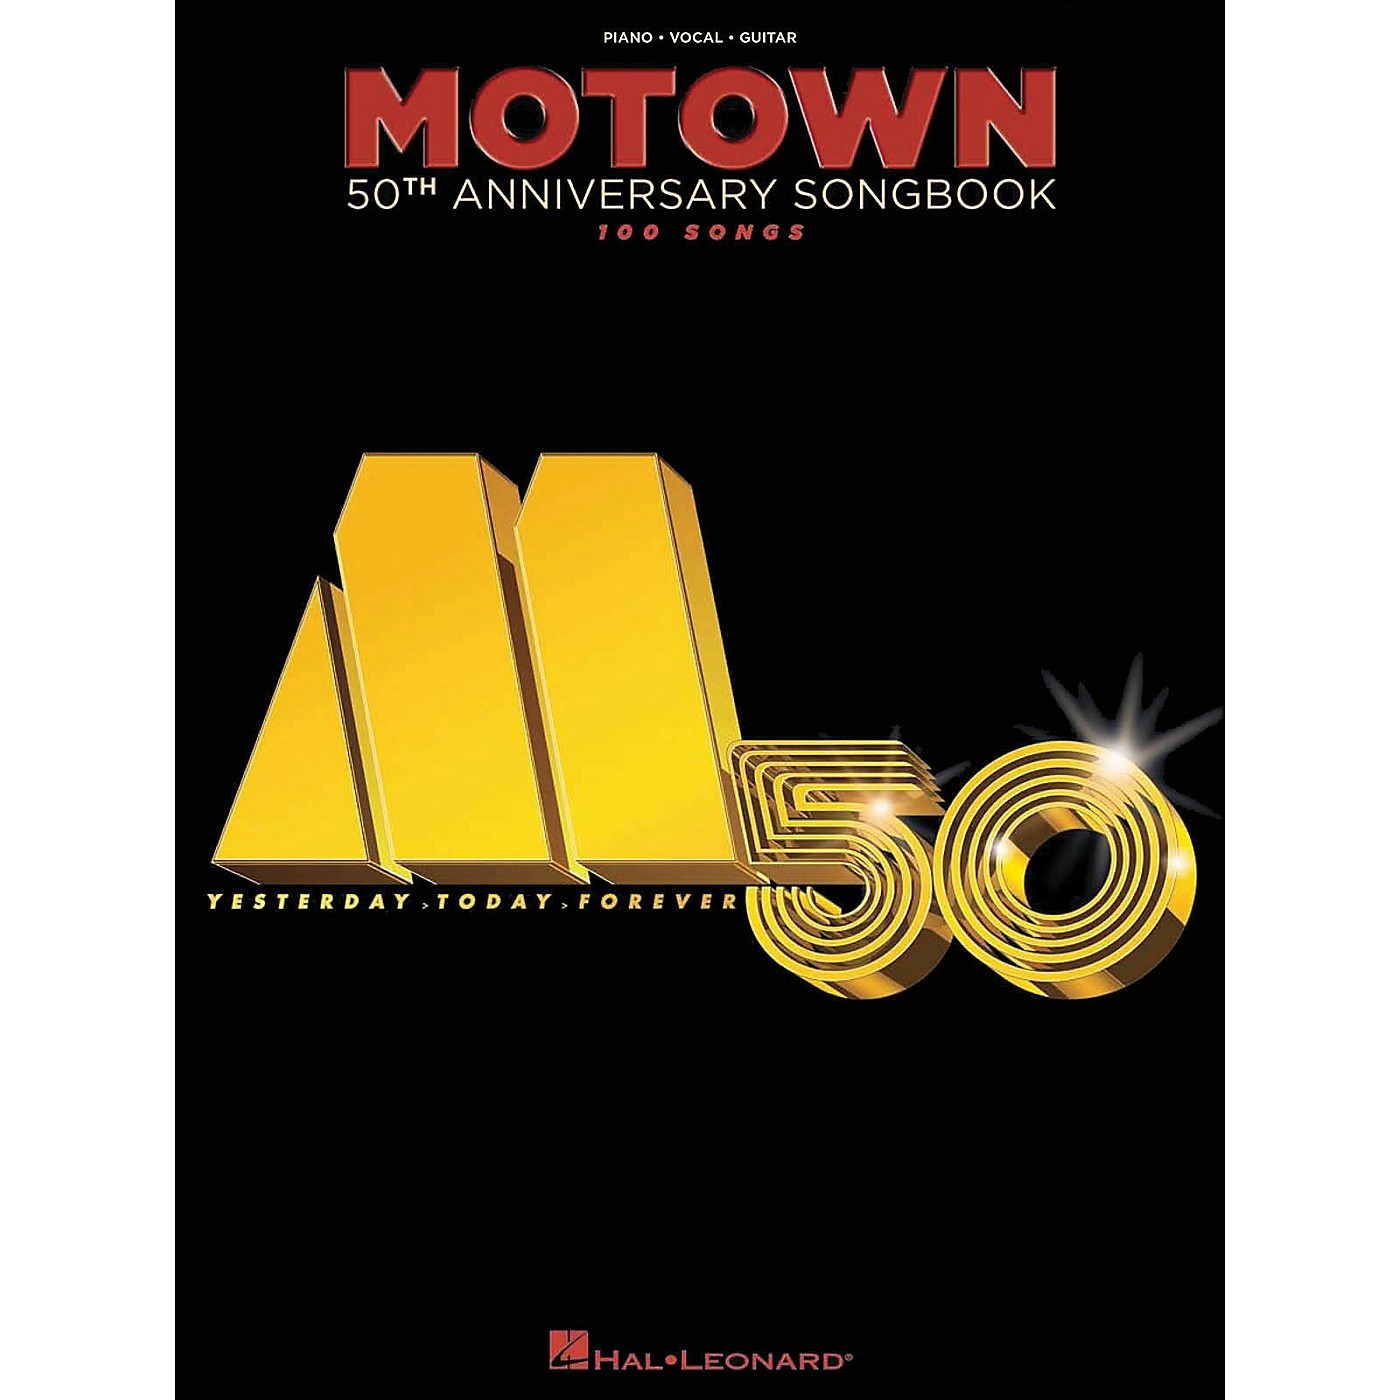 Hal Leonard Motown 50th Anniversary Songbook arranged for piano, vocal, and guitar (P/V/G) thumbnail